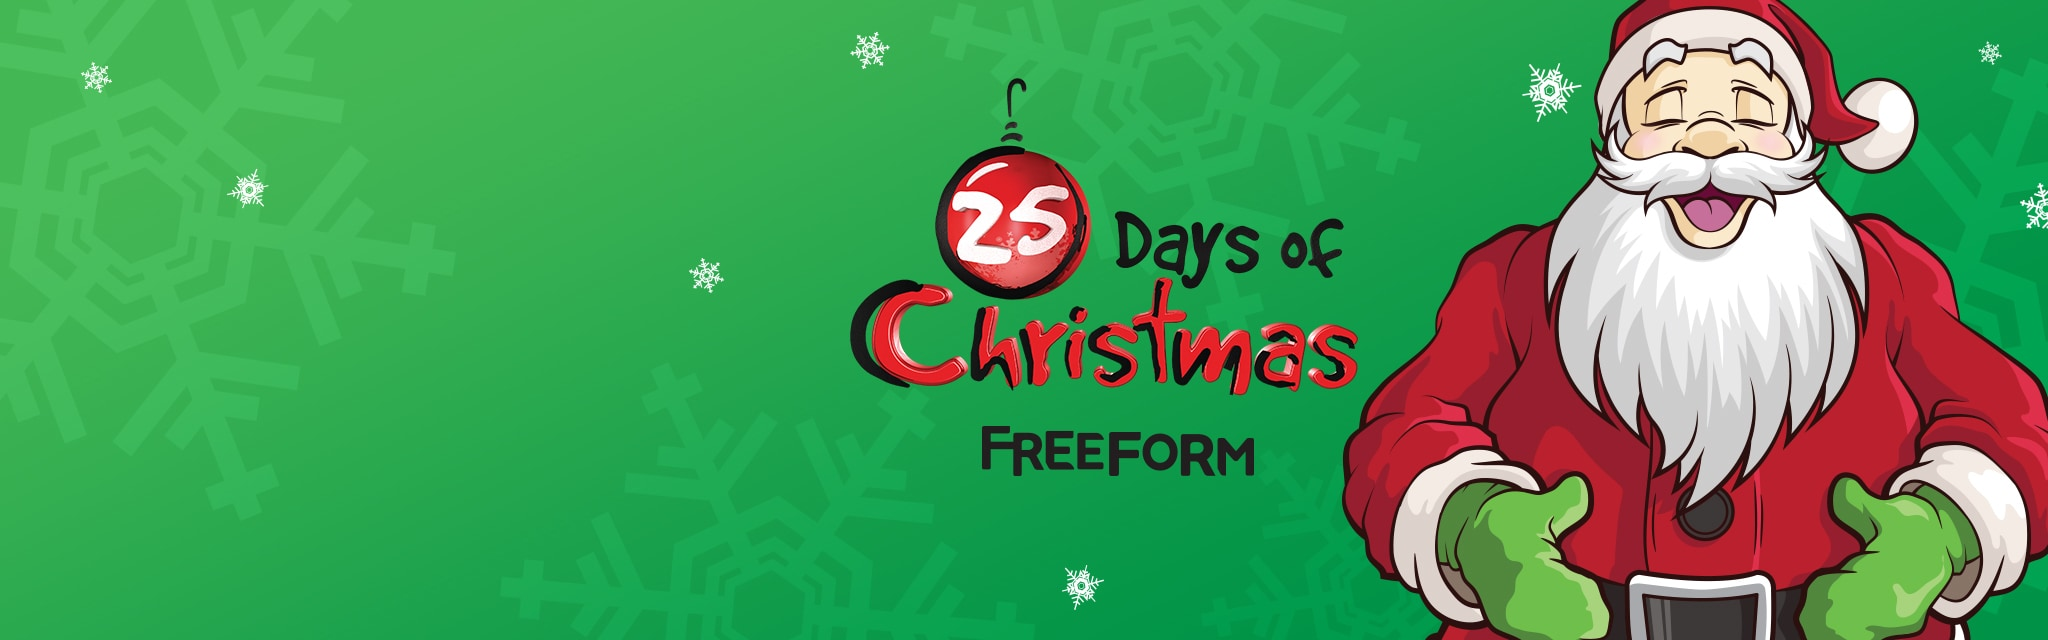 FreeForm - 25 Days of Christmas - Hero